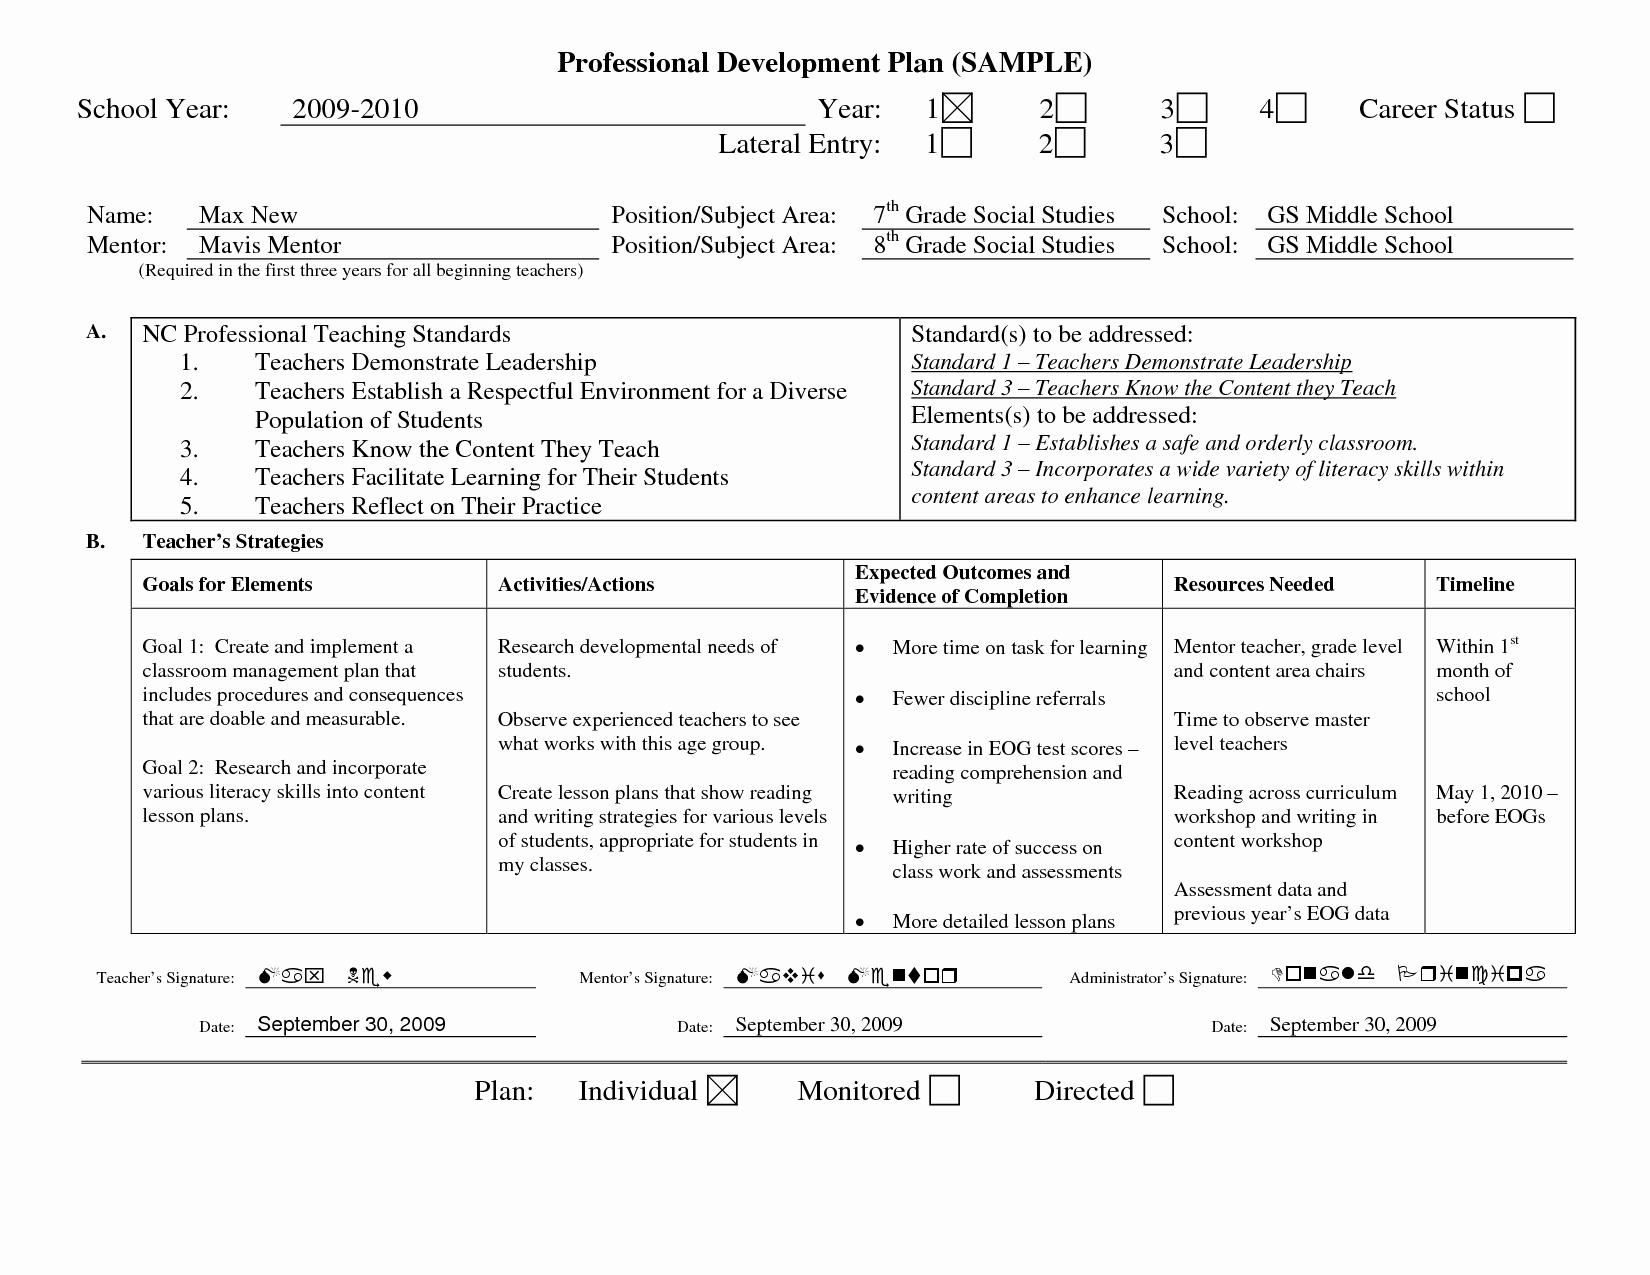 Personalized Learning Plan Template Elegant Professional Learning Plan Examples Google Search